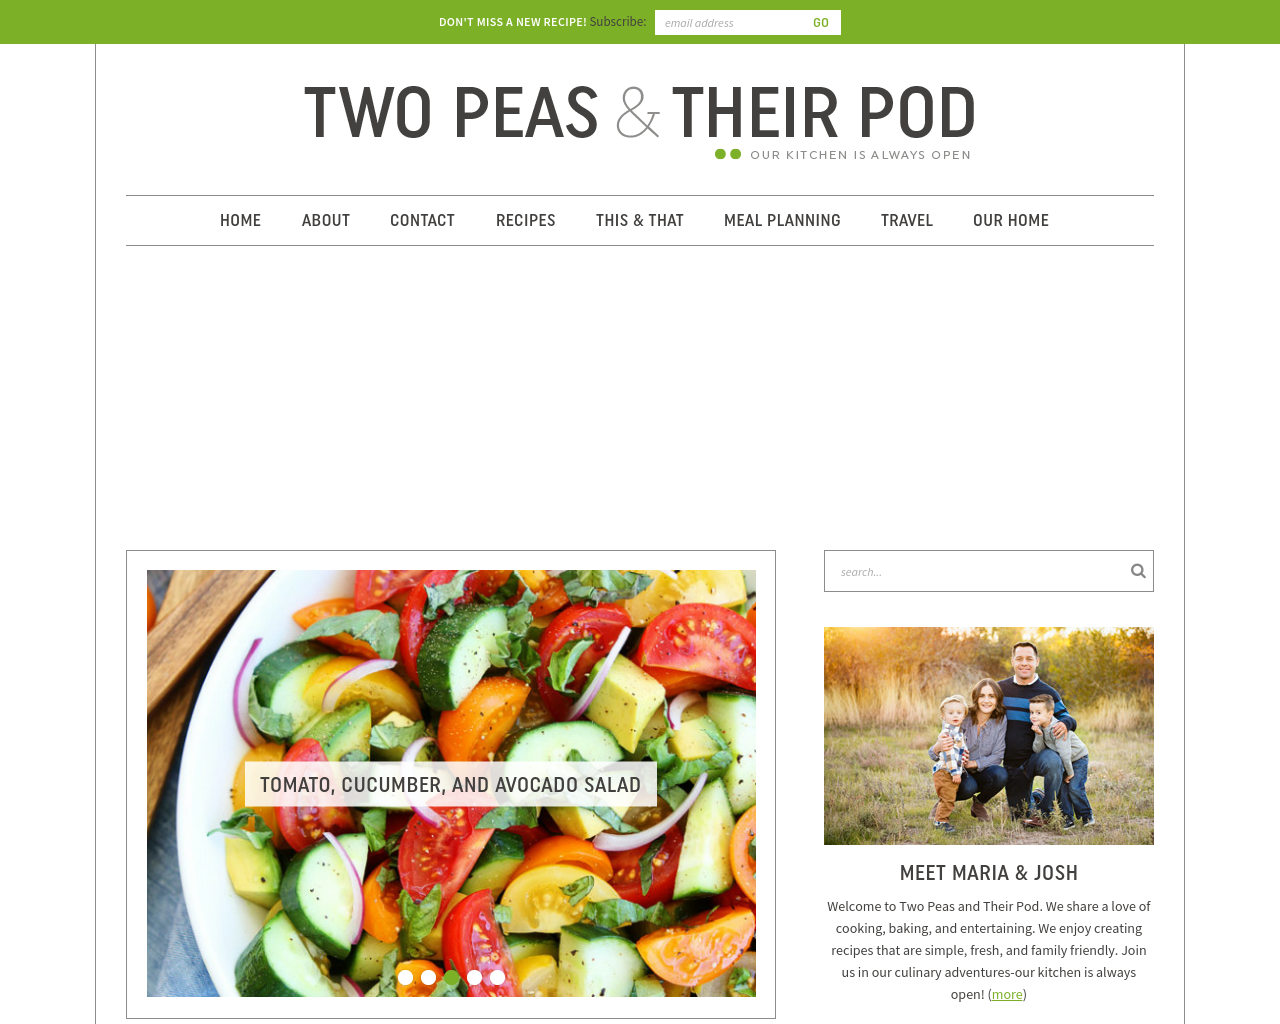 Two-Peas-&-Their-Pod-Advertising-Reviews-Pricing